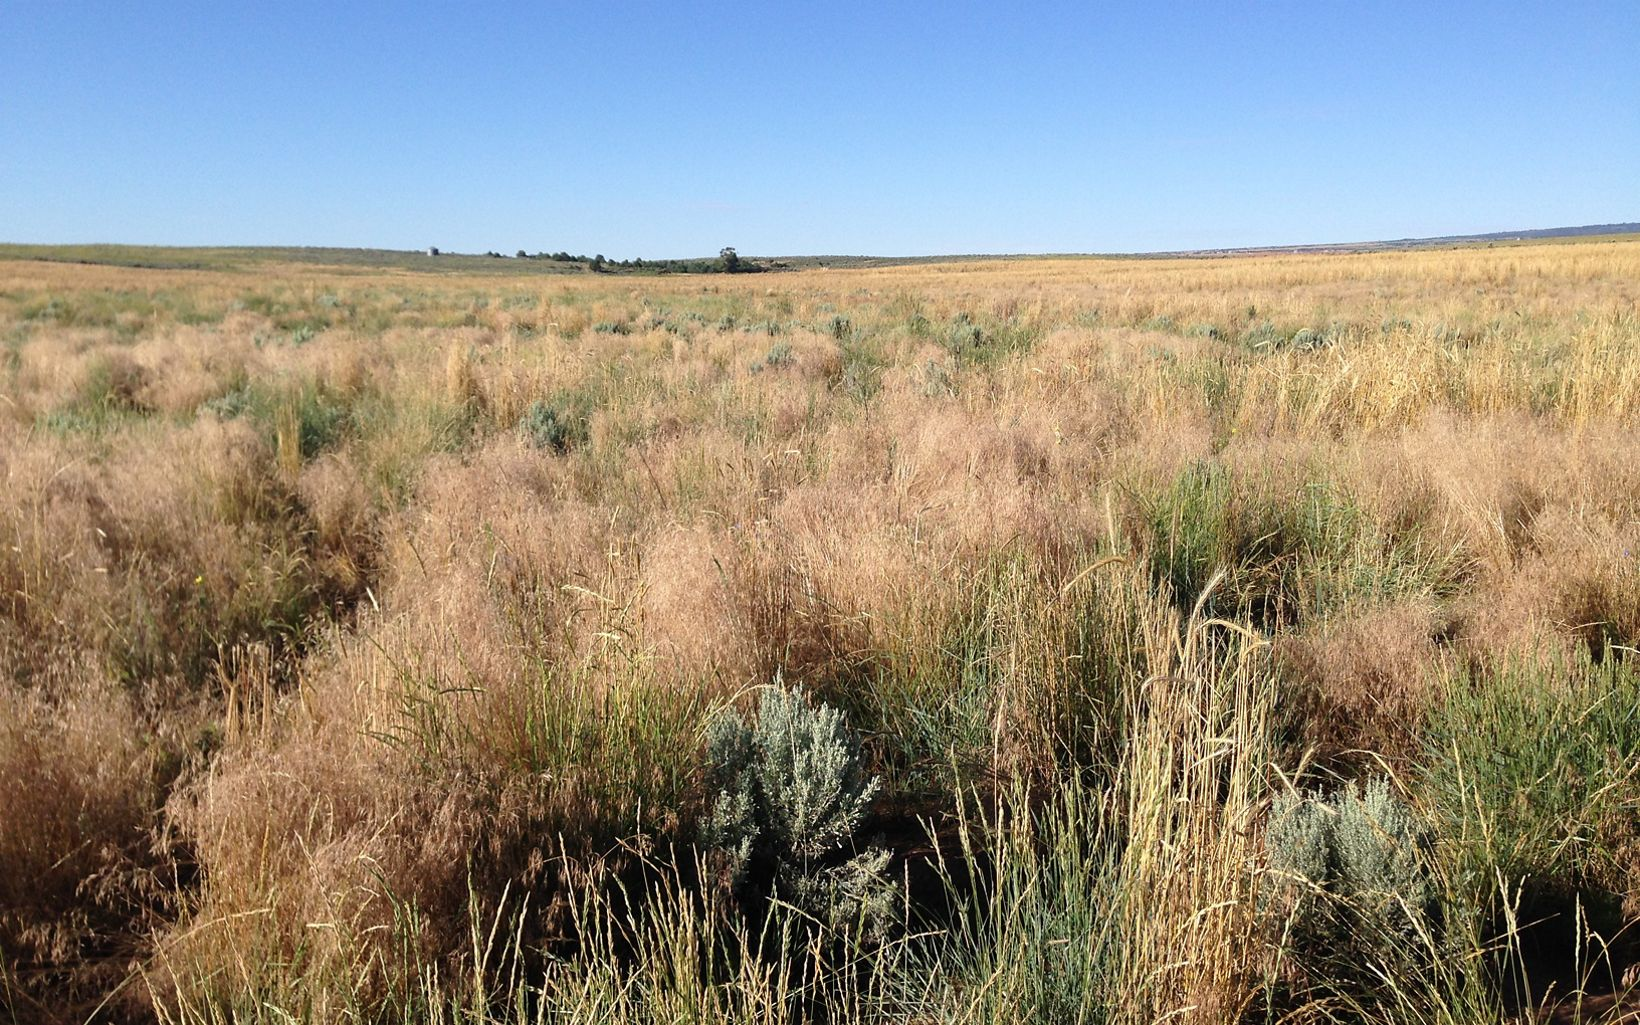 The preserve is situated within the core of Utah's remaining sagebrush shrublands.